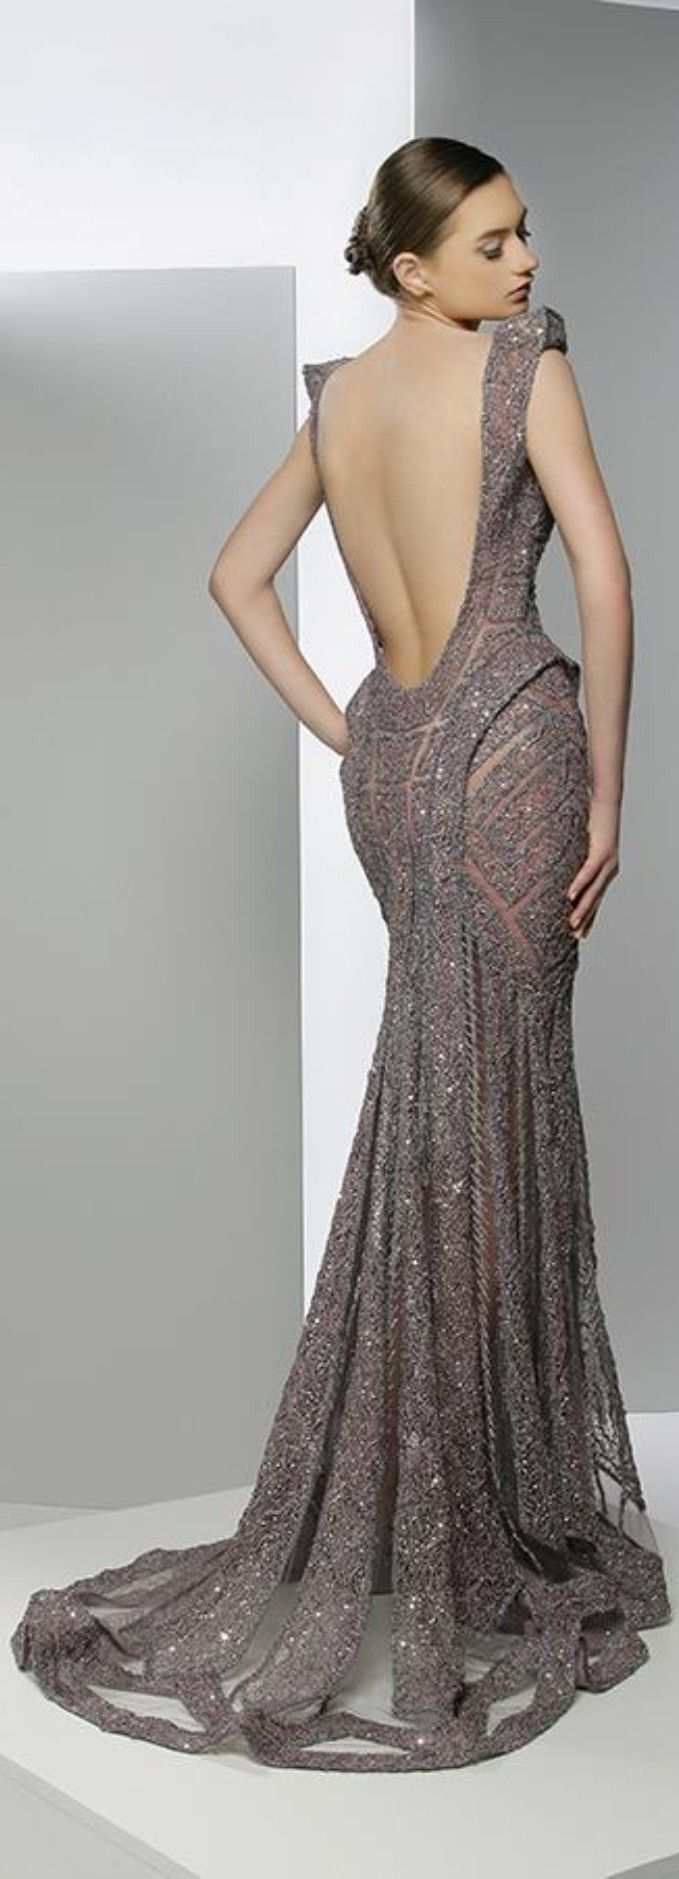 best glamour images on pinterest chic dress cute dresses and